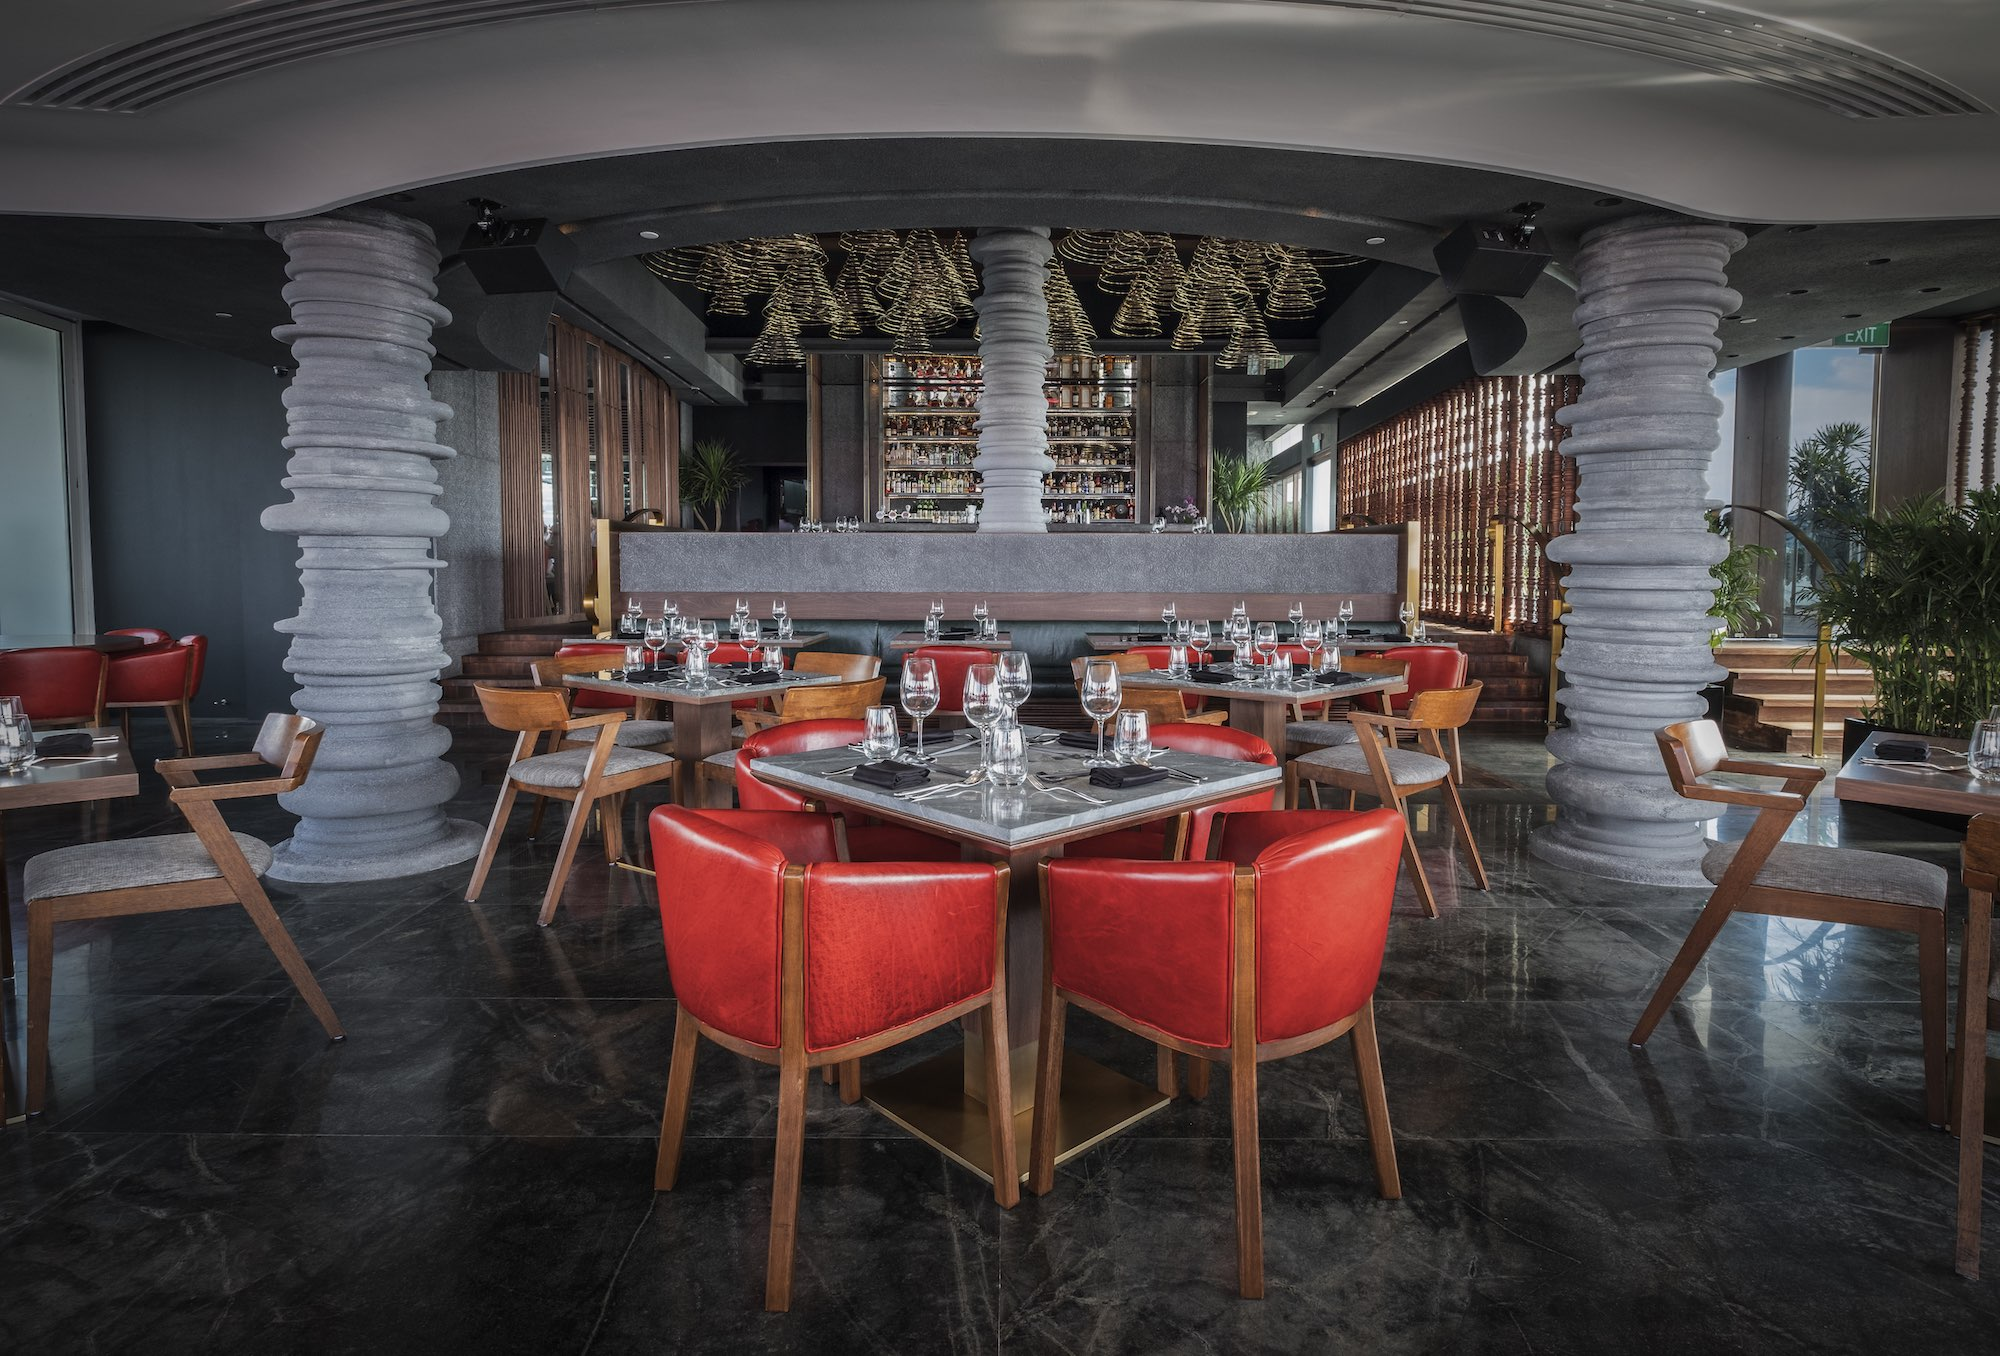 CE LA VI Restaurant Rooftop Bar Interiors Photography Singapore COCO Creative Studio 29-1